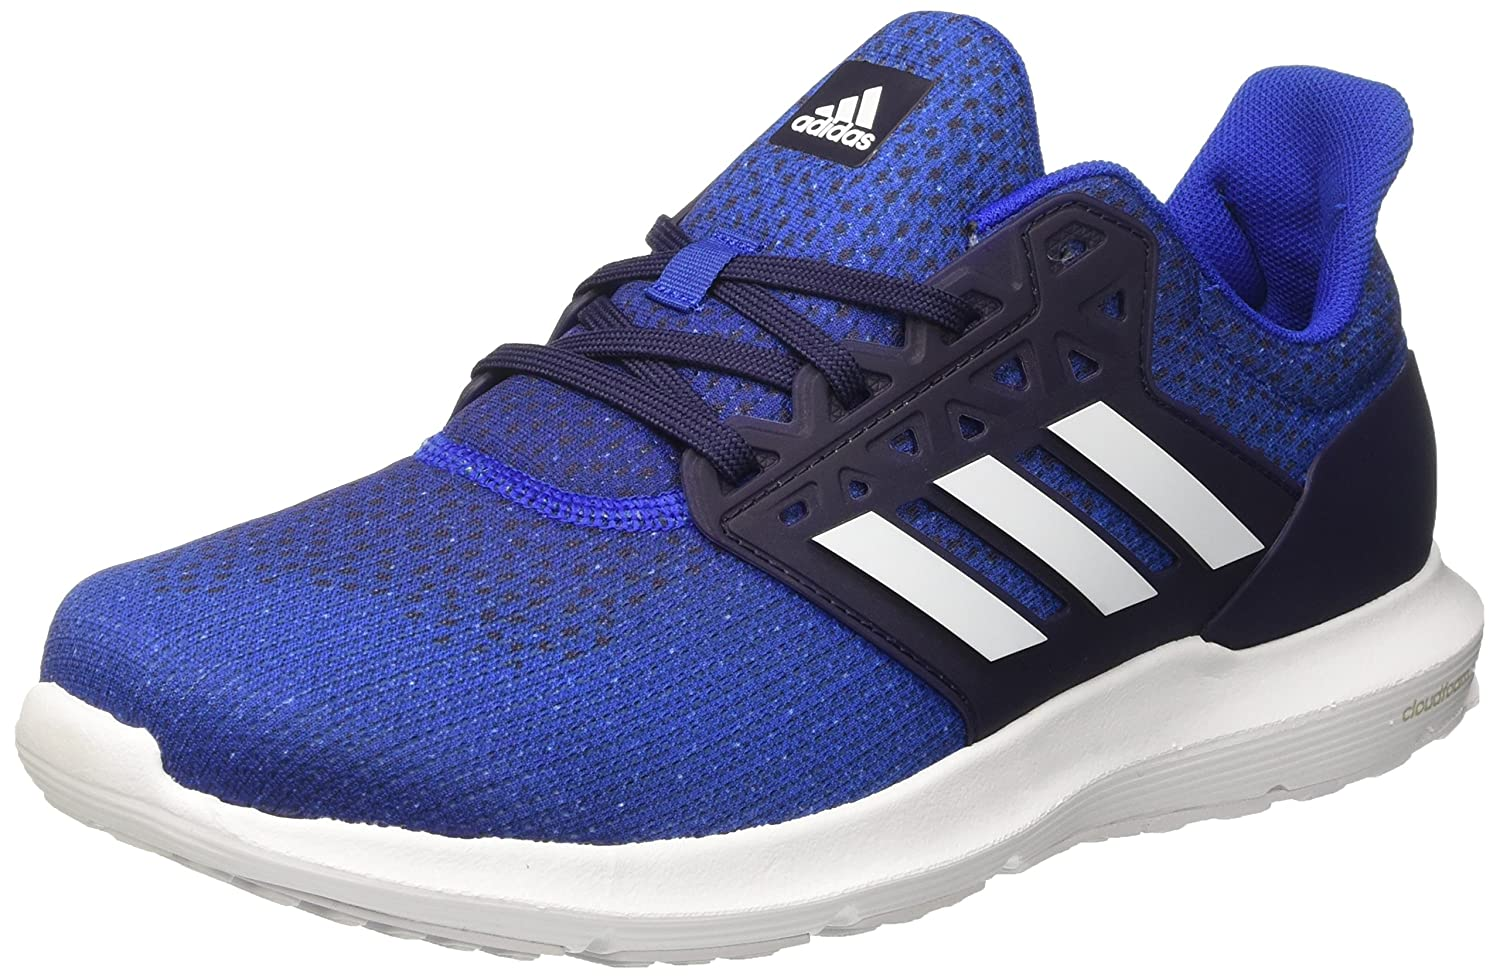 4130992f1 Adidas Men s Solyx M Running Shoes  Buy Online at Low Prices in India -  Amazon.in